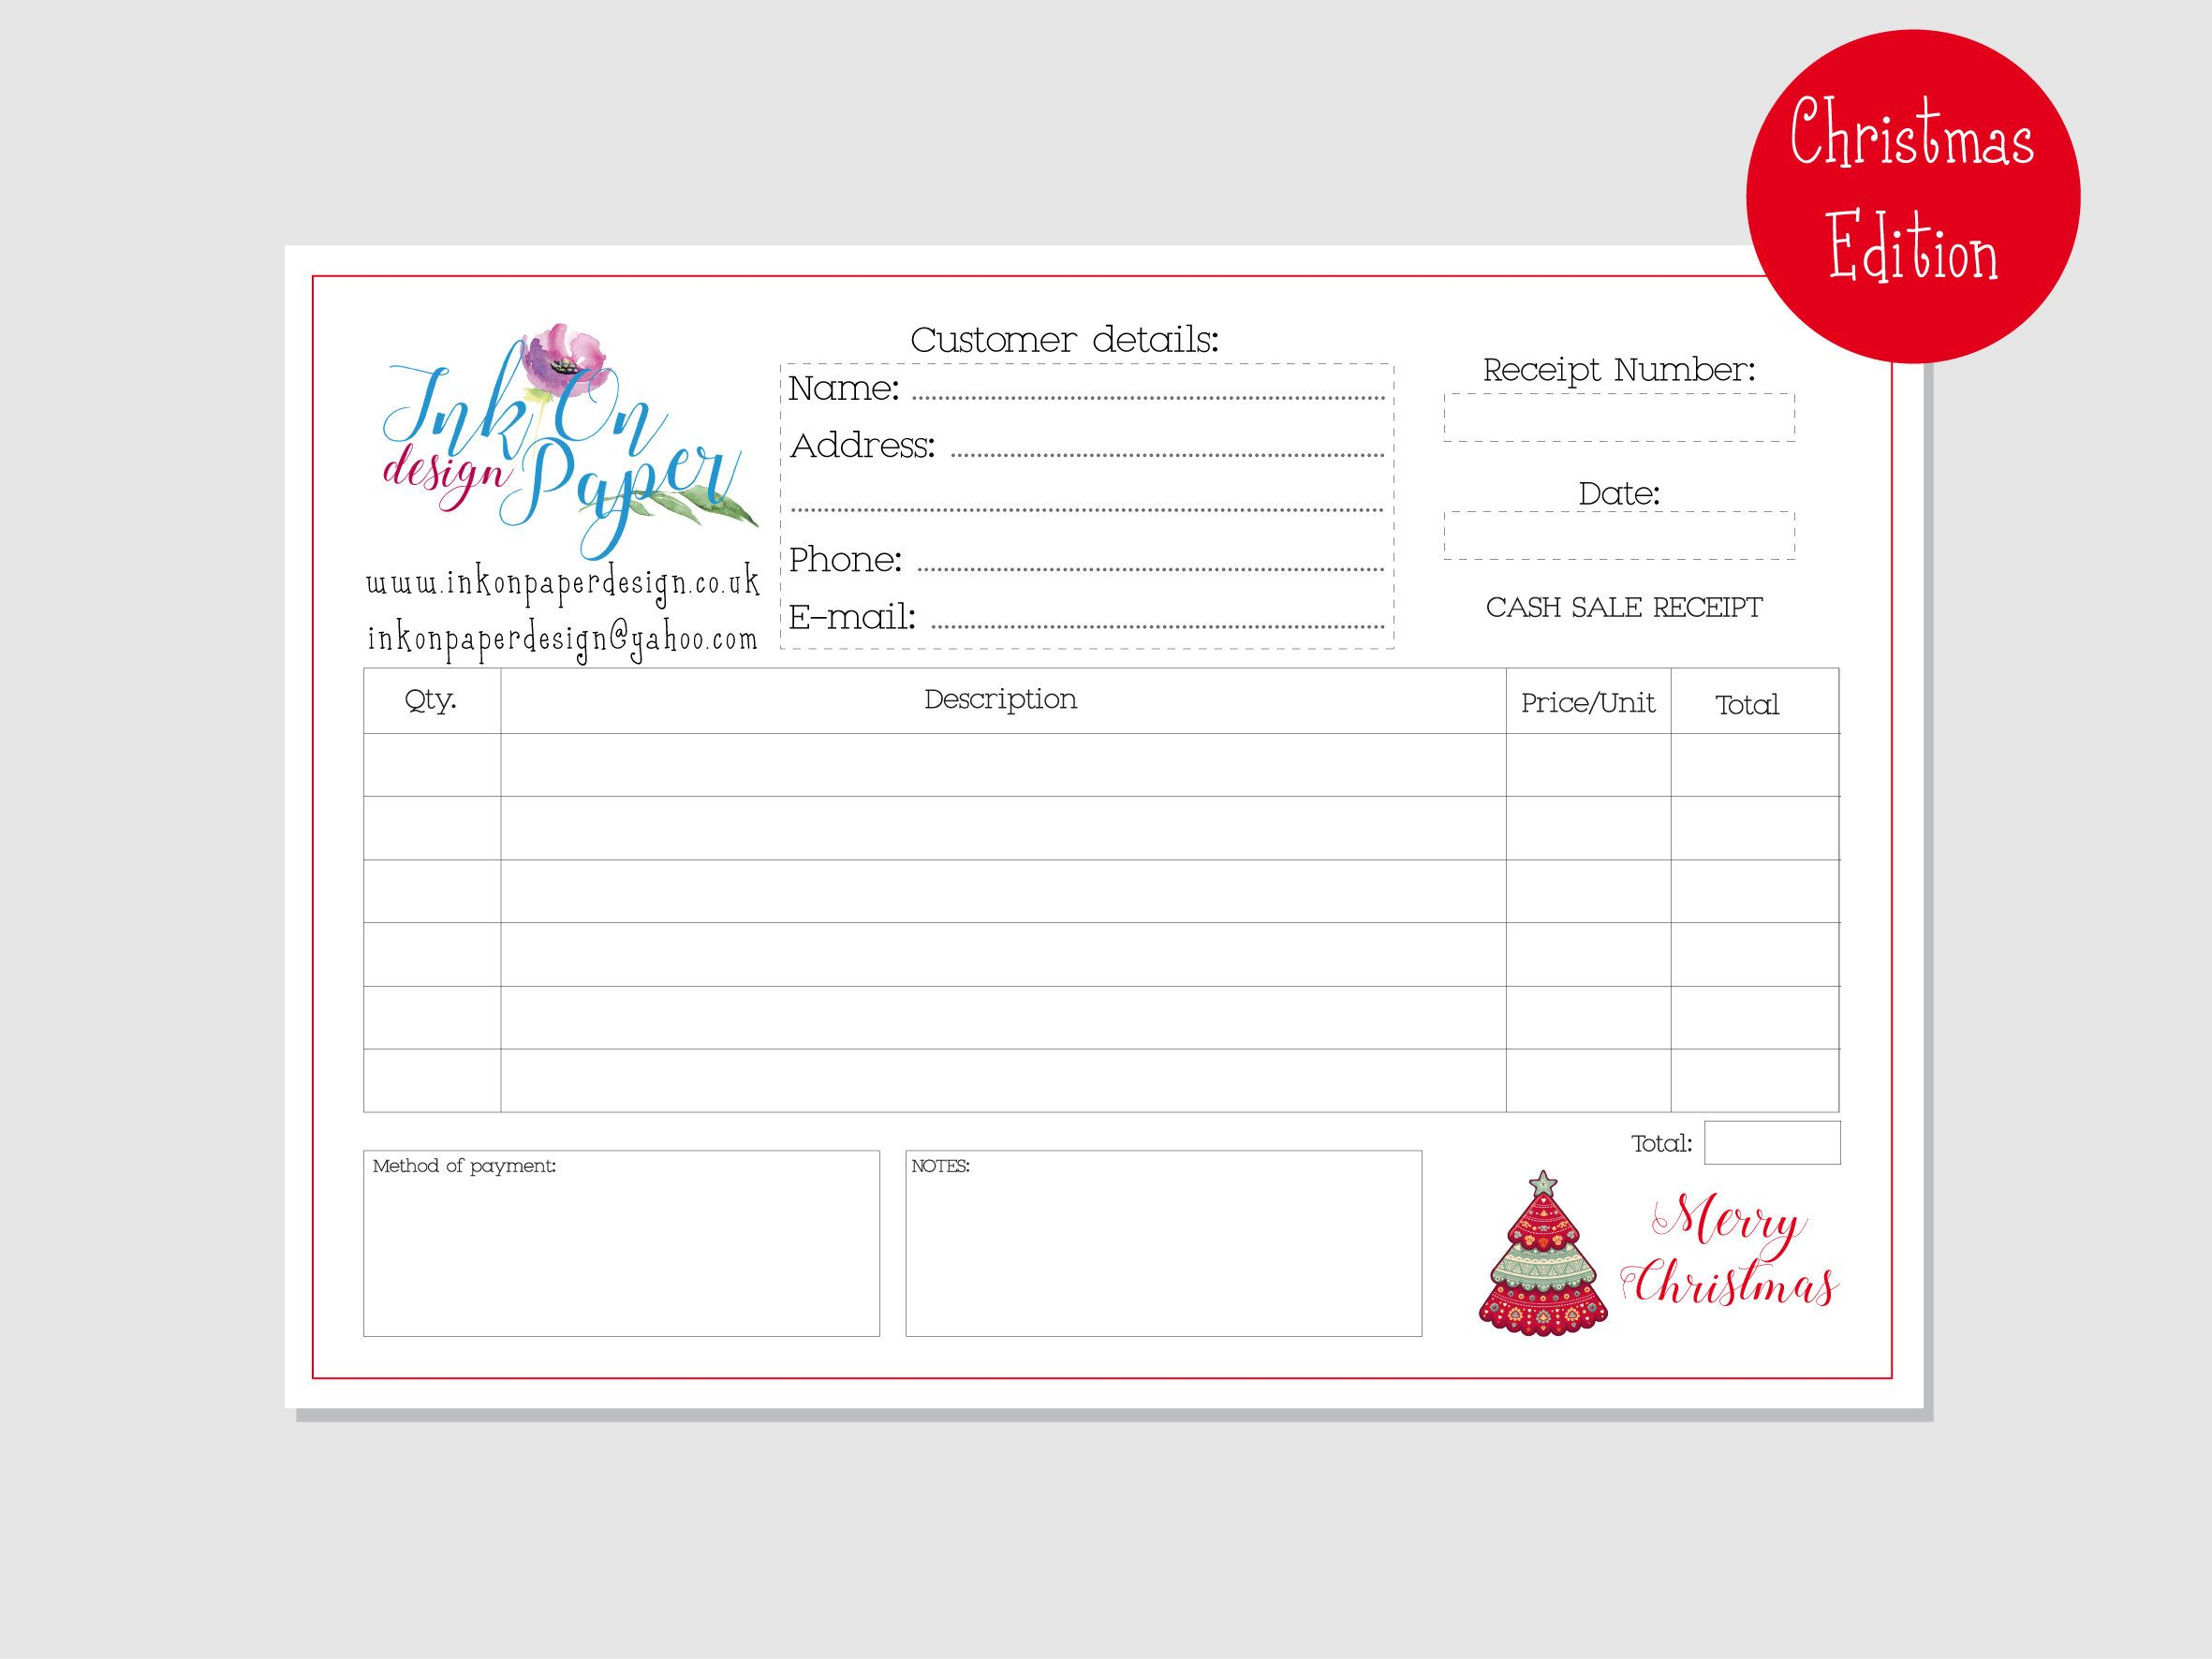 Christmas Fairs Receipt Book Personalised Order Book Christmas Edition Petty Cash Office Supplie Business Binders Personalized Books Handmade Packaging